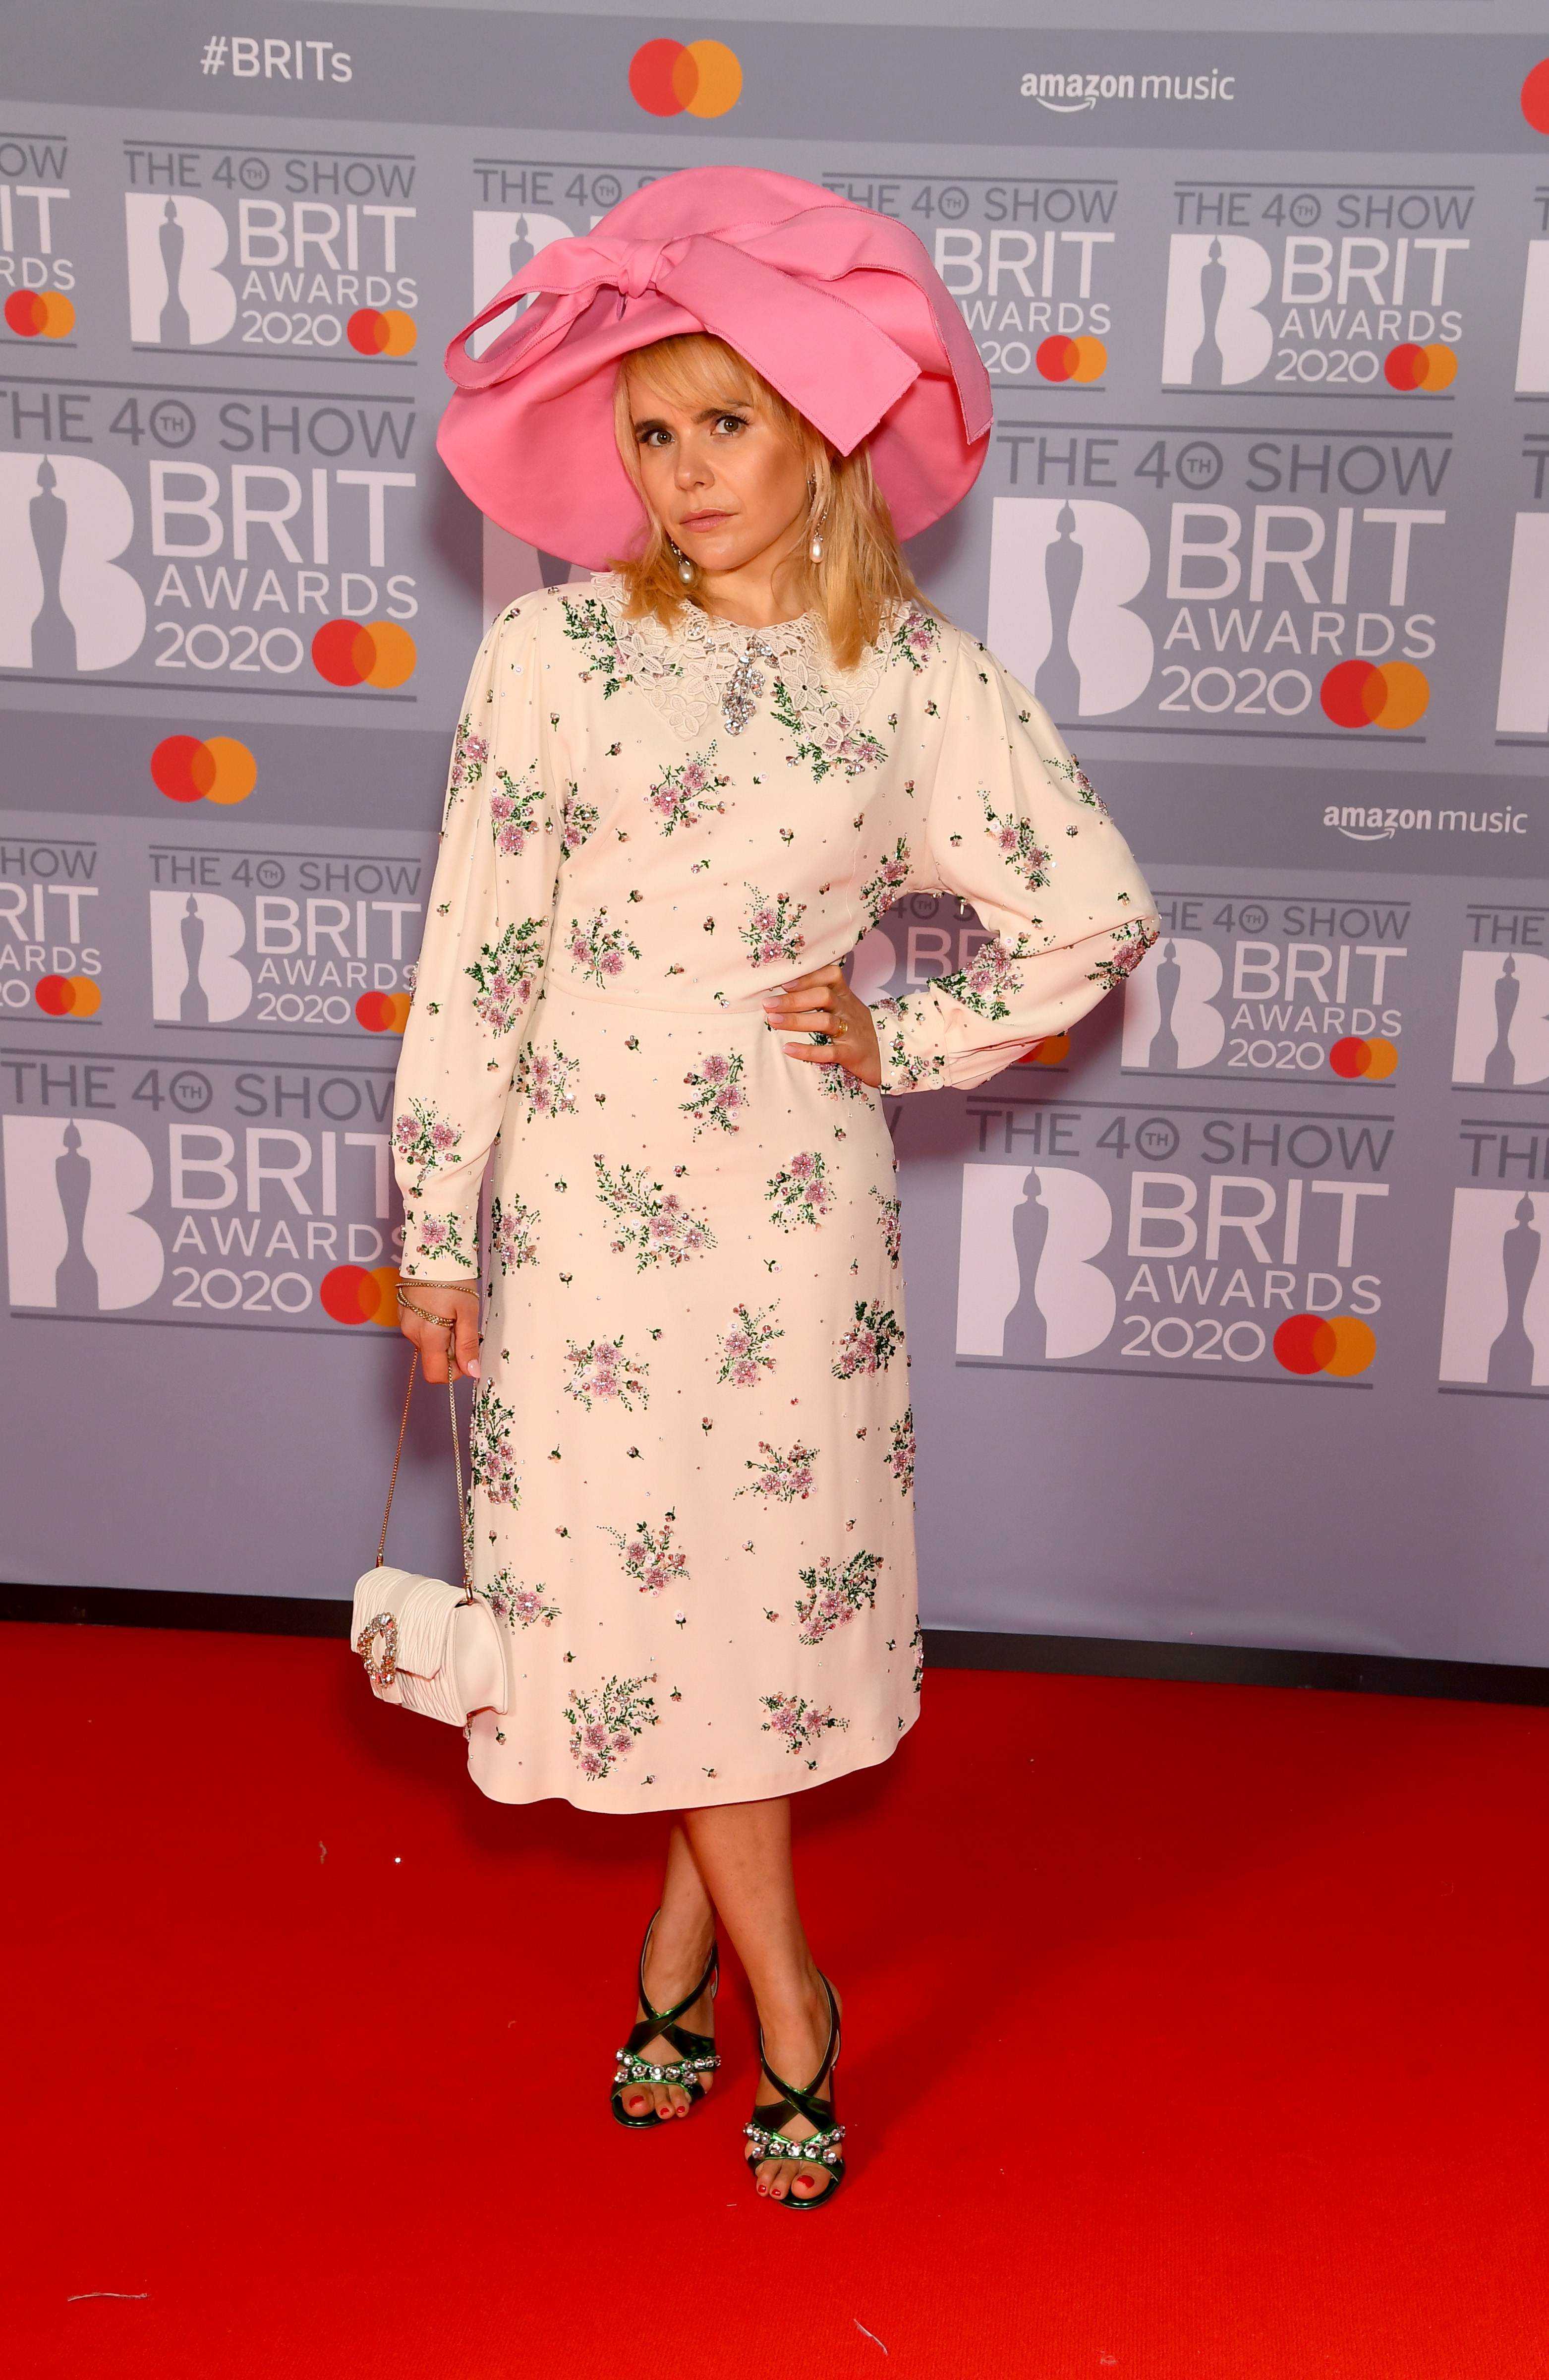 Paloma Faith attends The BRIT Awards 2020 at The O2 Arena on February 18, 2020 in London, England. (Photo by Dave J Hogan/Getty Images)